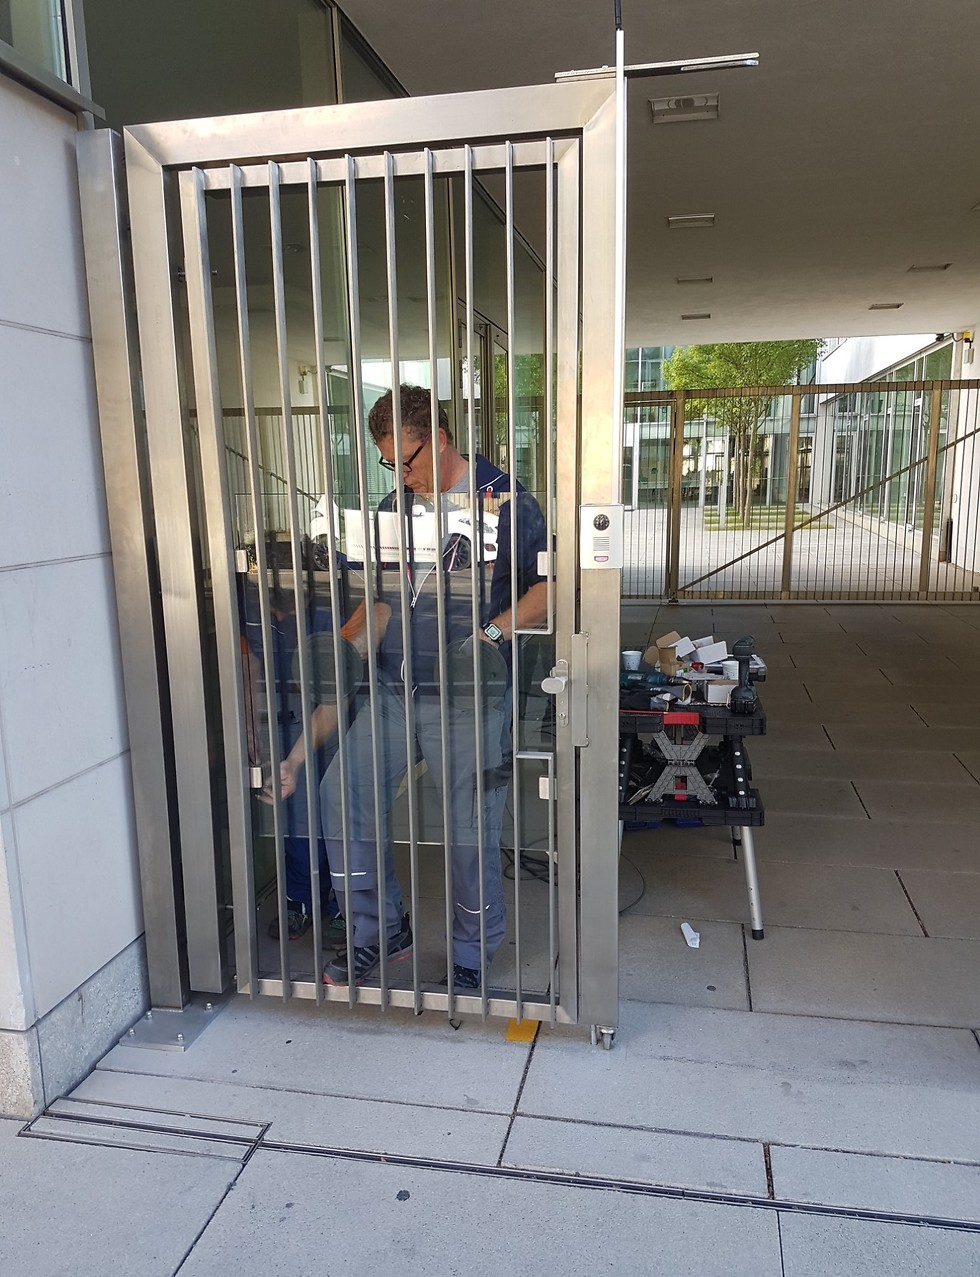 A security gate at the entrance to a Jewish community center in Germany